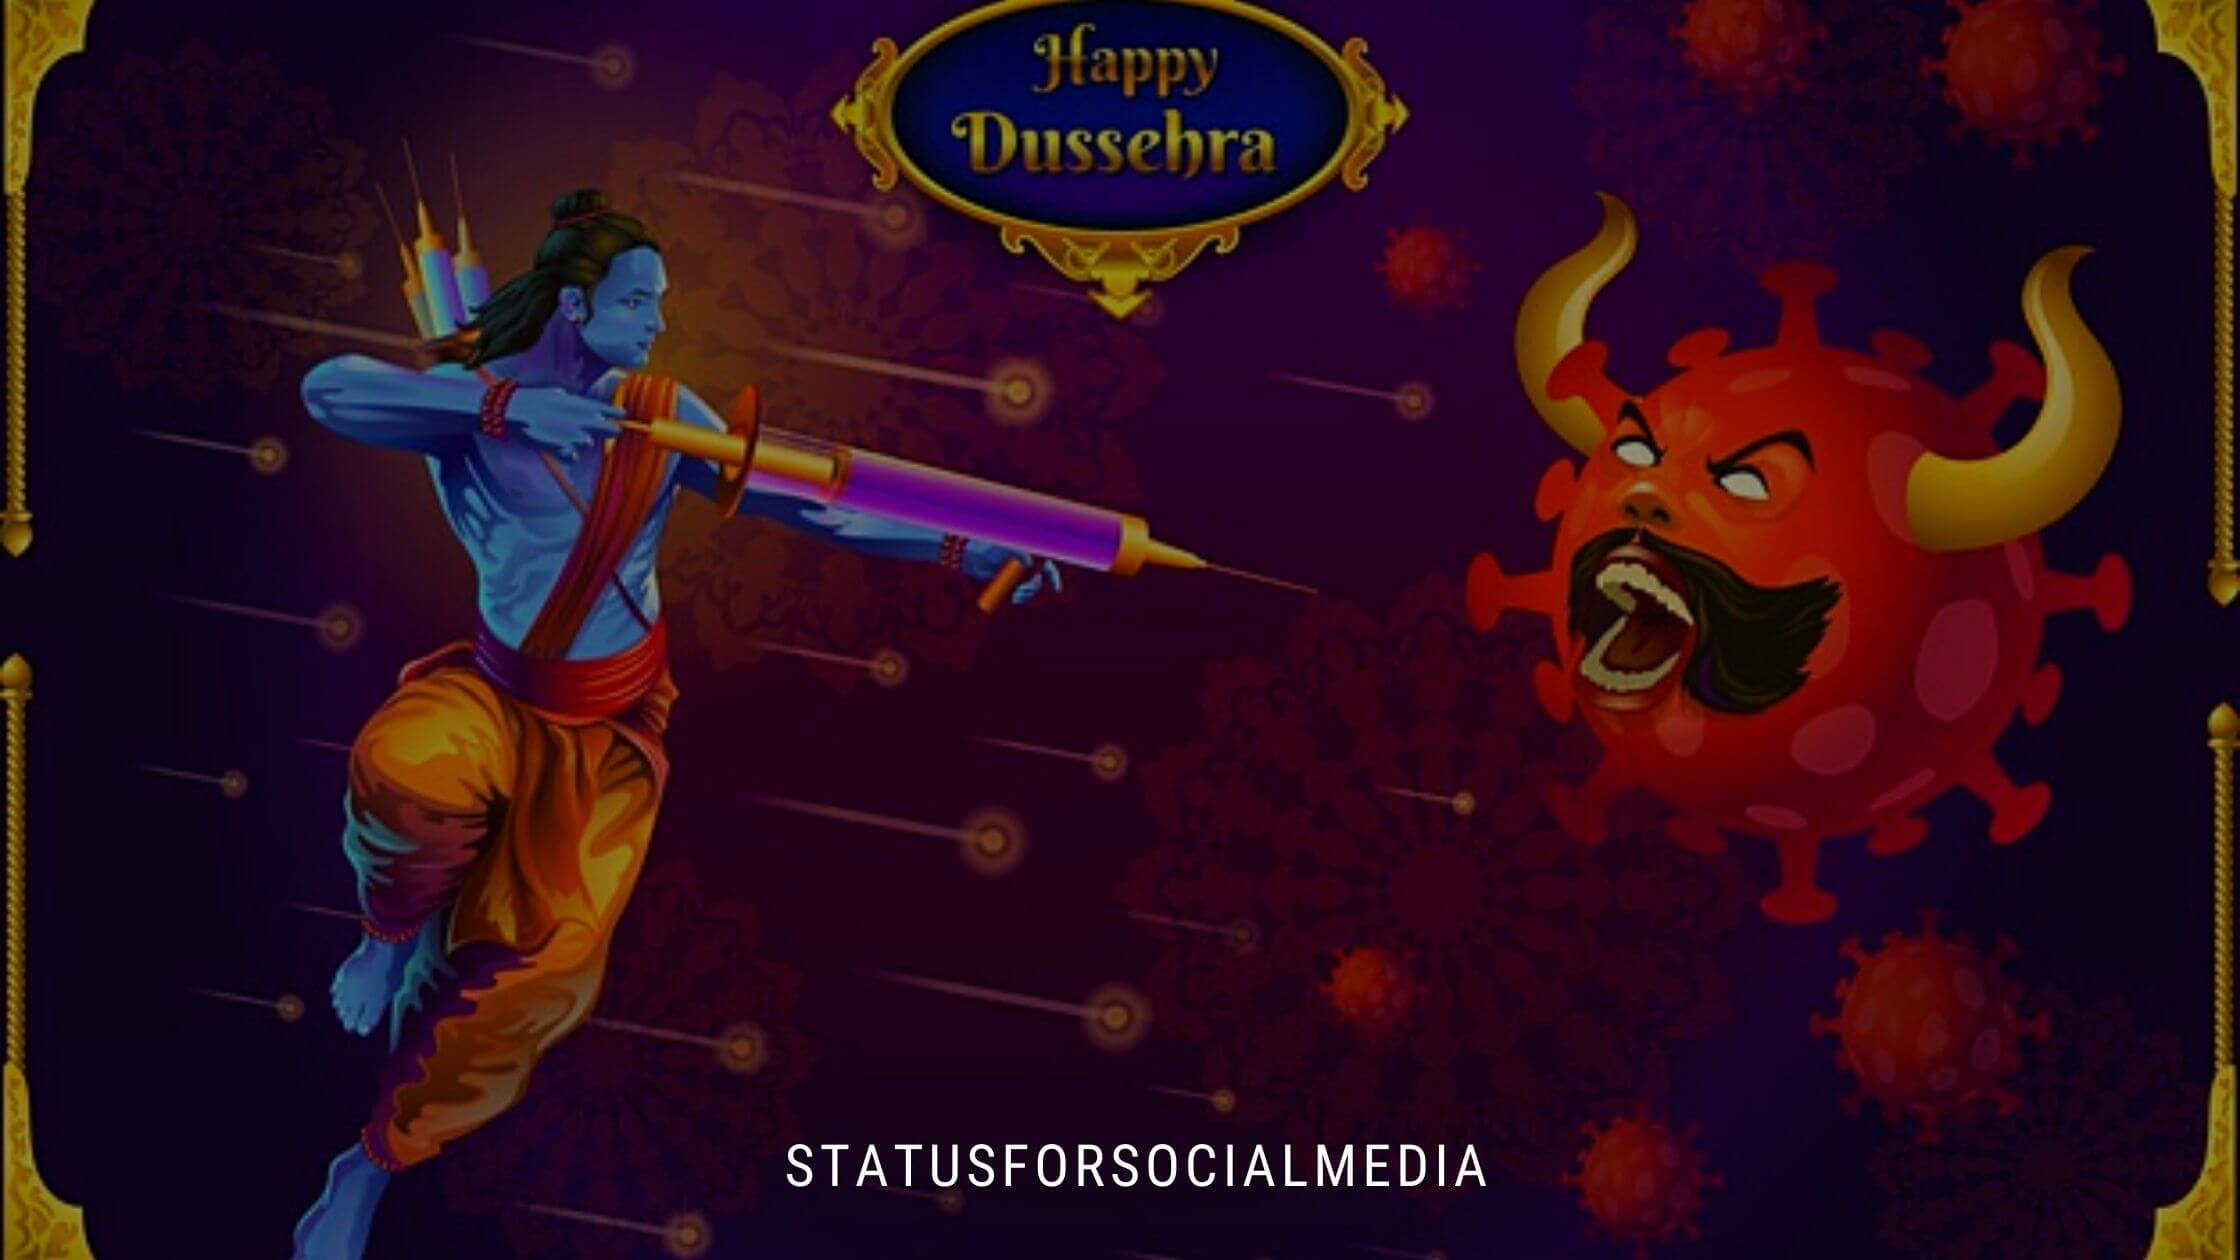 Unique Happy Dussehra Wishes And Quotes statusforsocialmedia